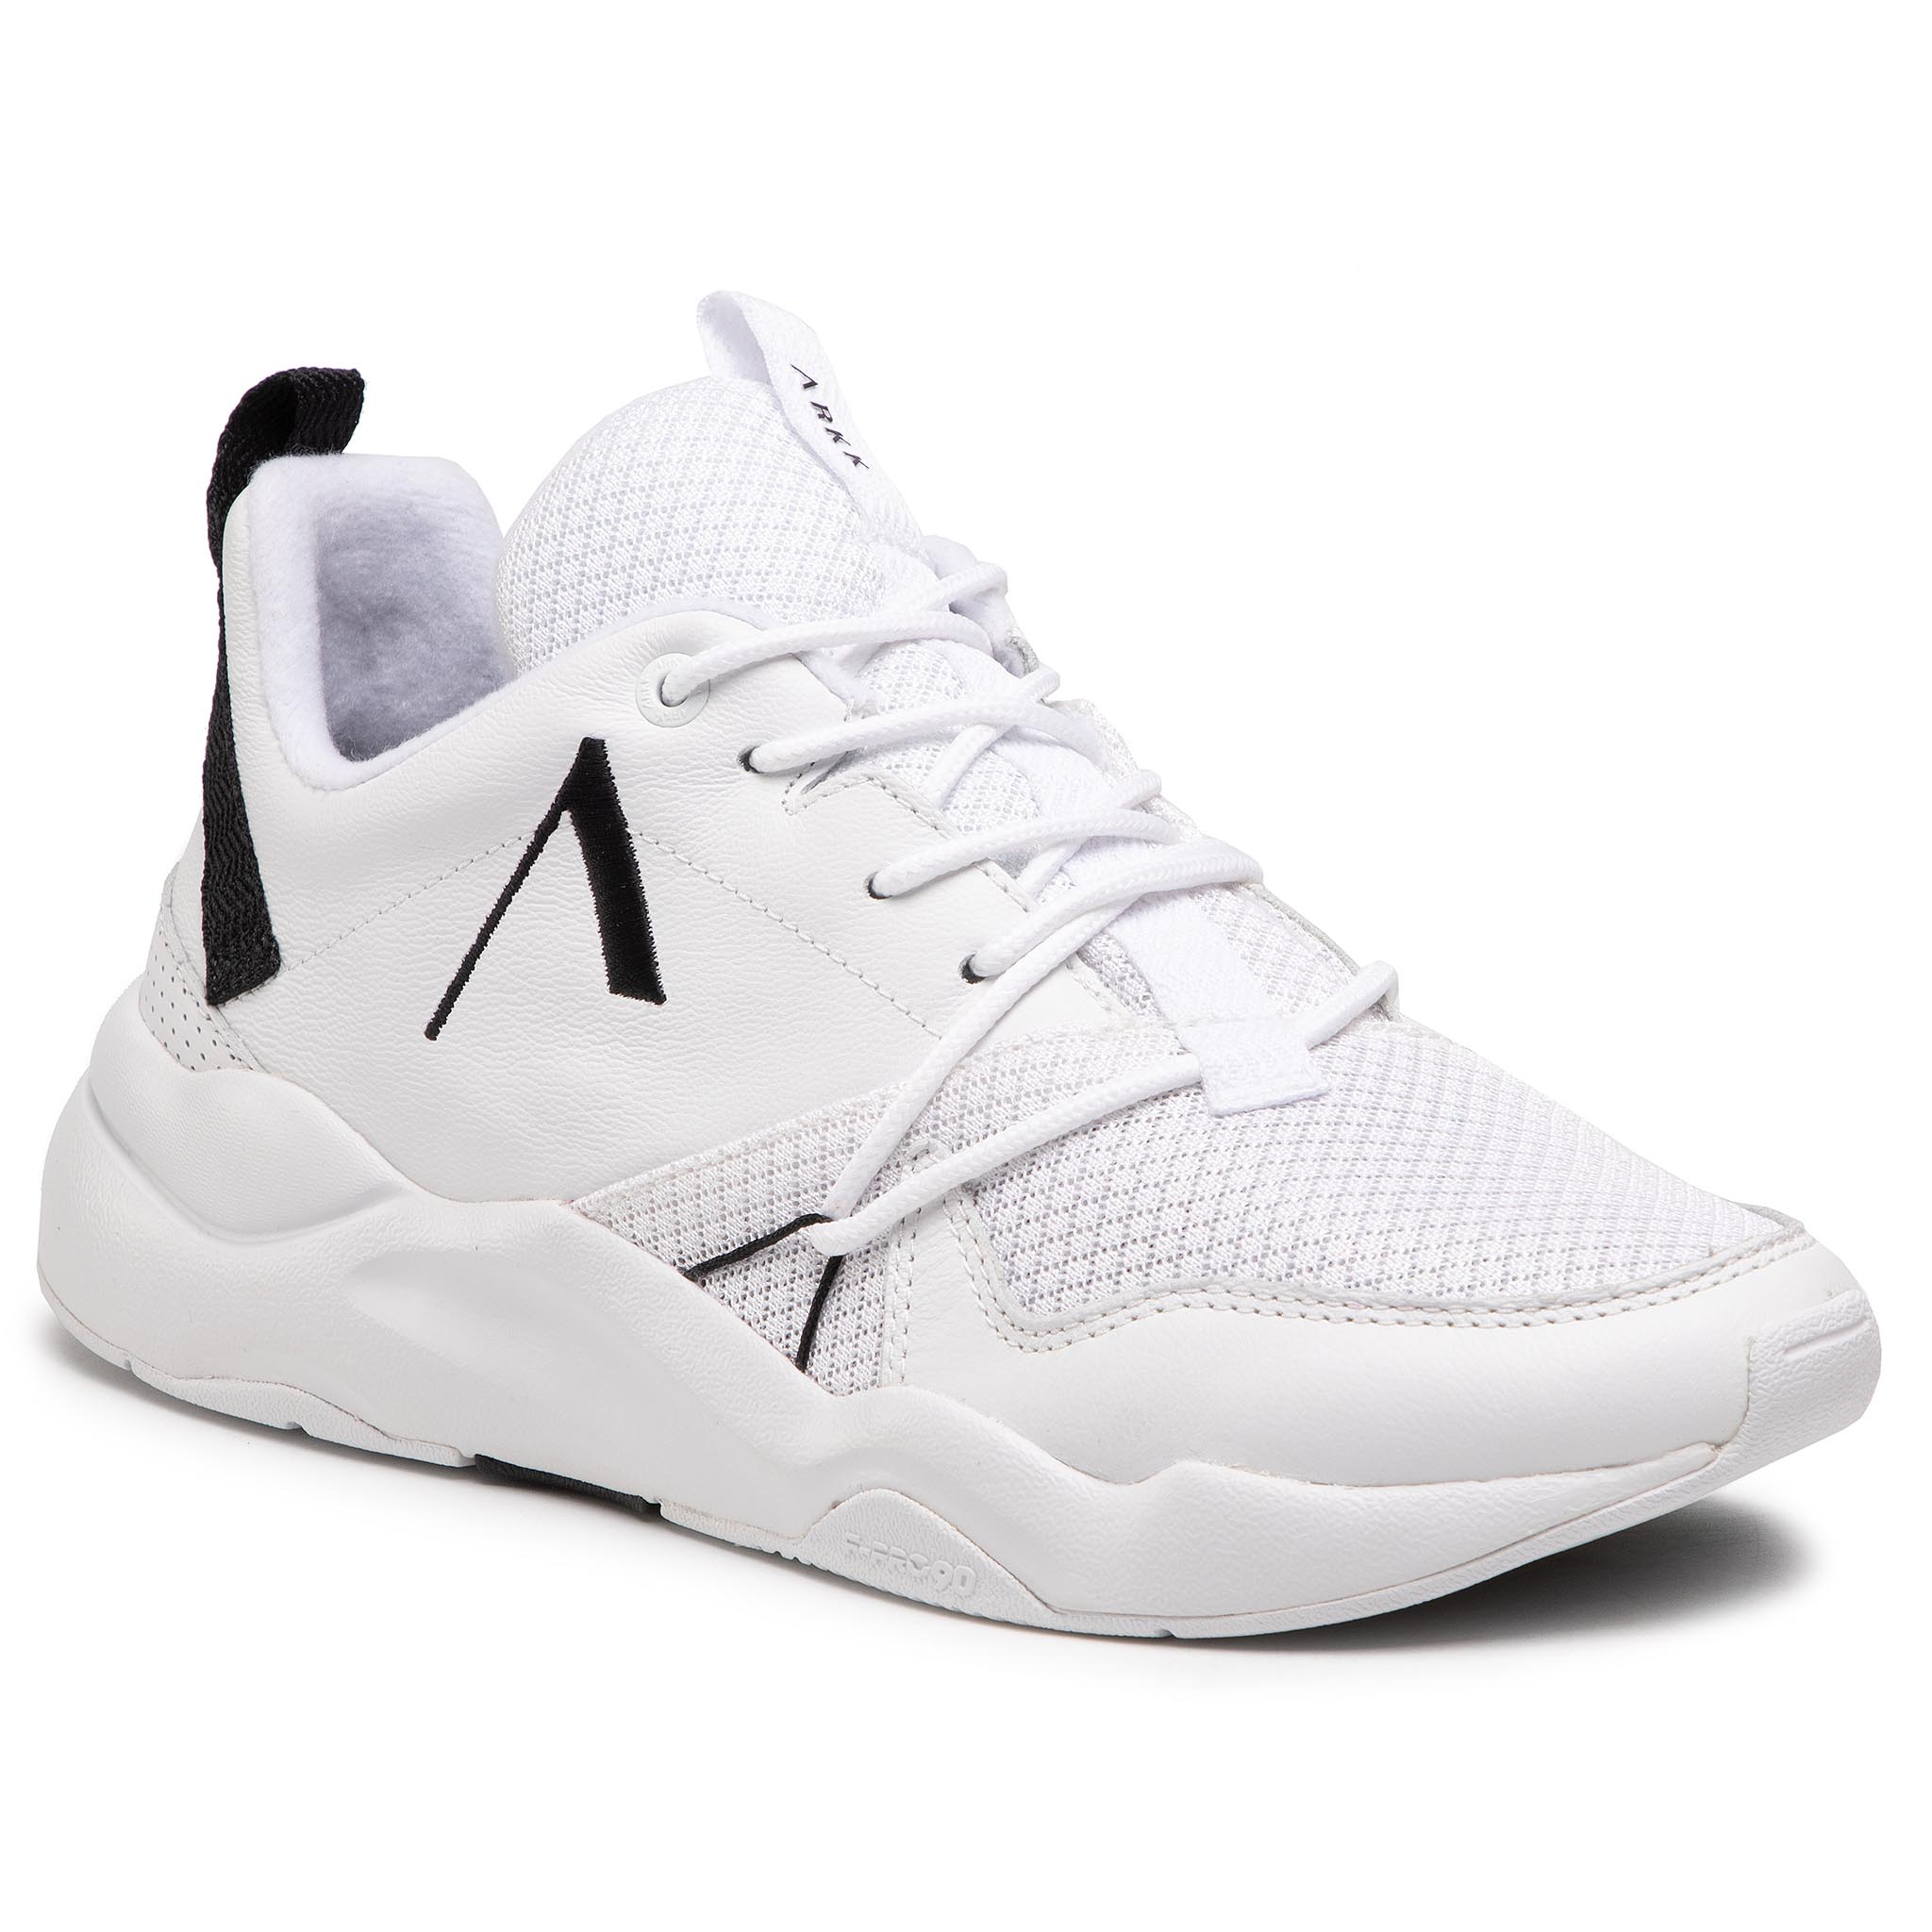 Image of Sneakers ARKK COPENHAGEN - Asymtrix Mesh F-PRO90 CR3000-1099-M White Black